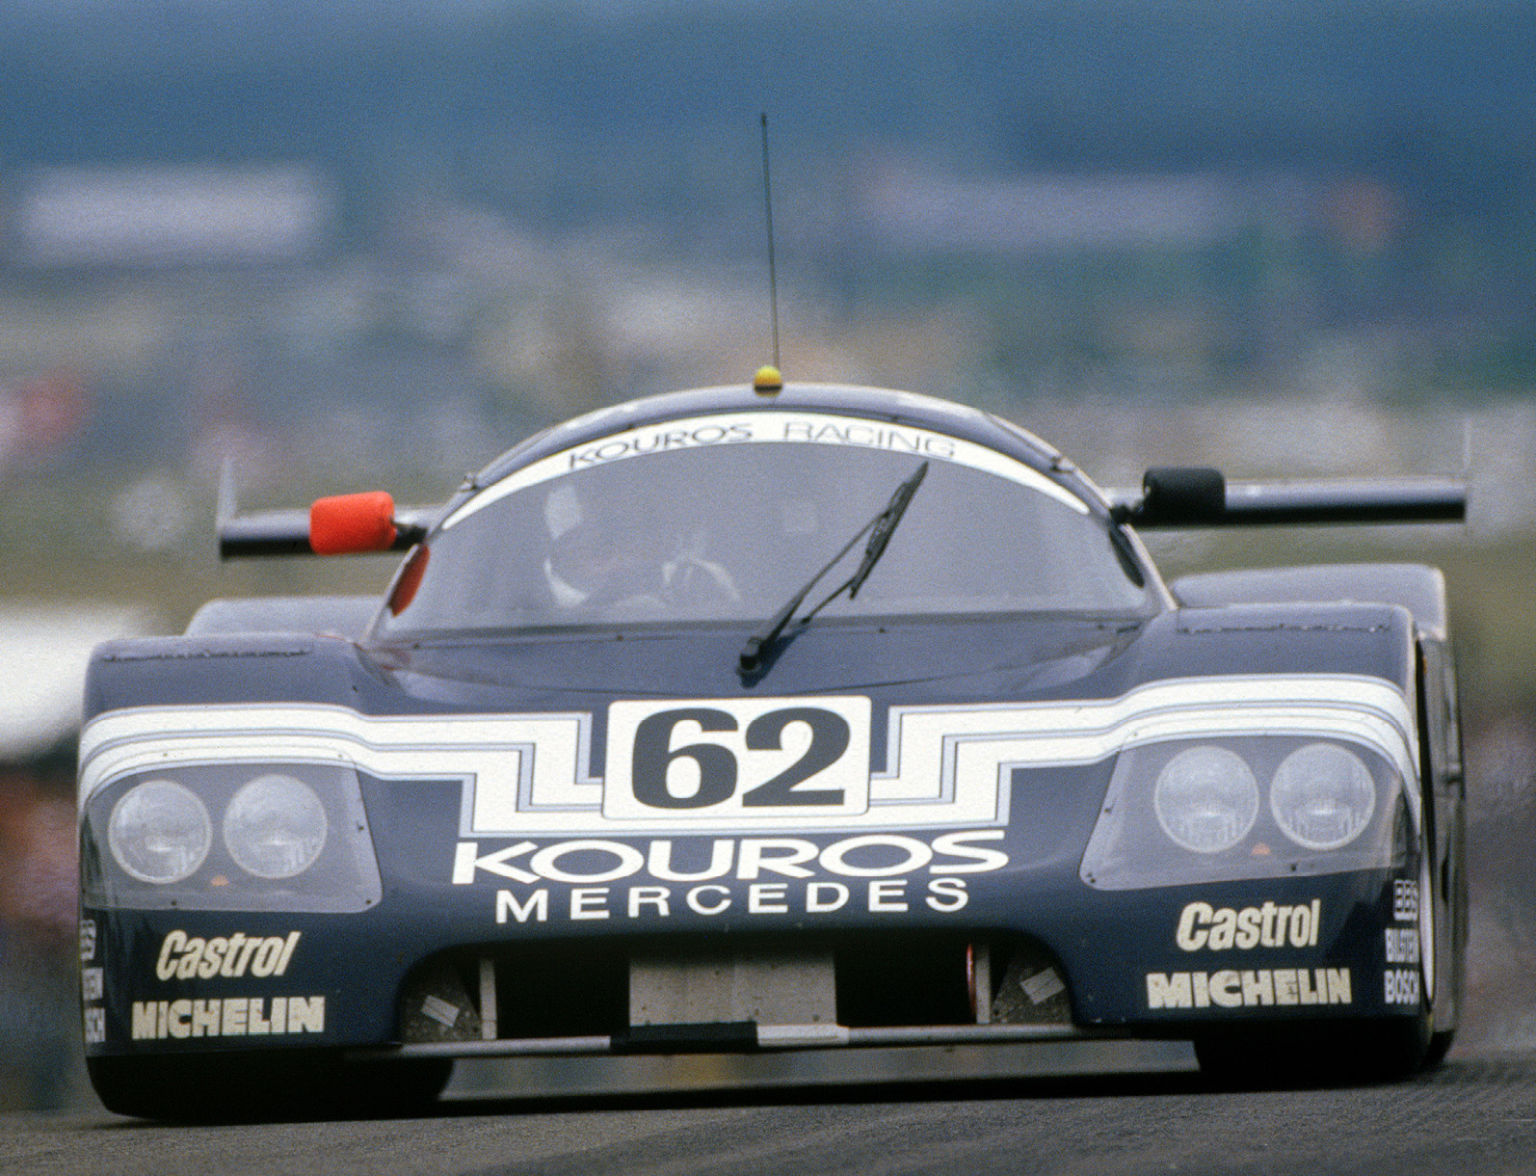 Thackwell's varied career even took him into Group C with Sauber, but that's where it ended